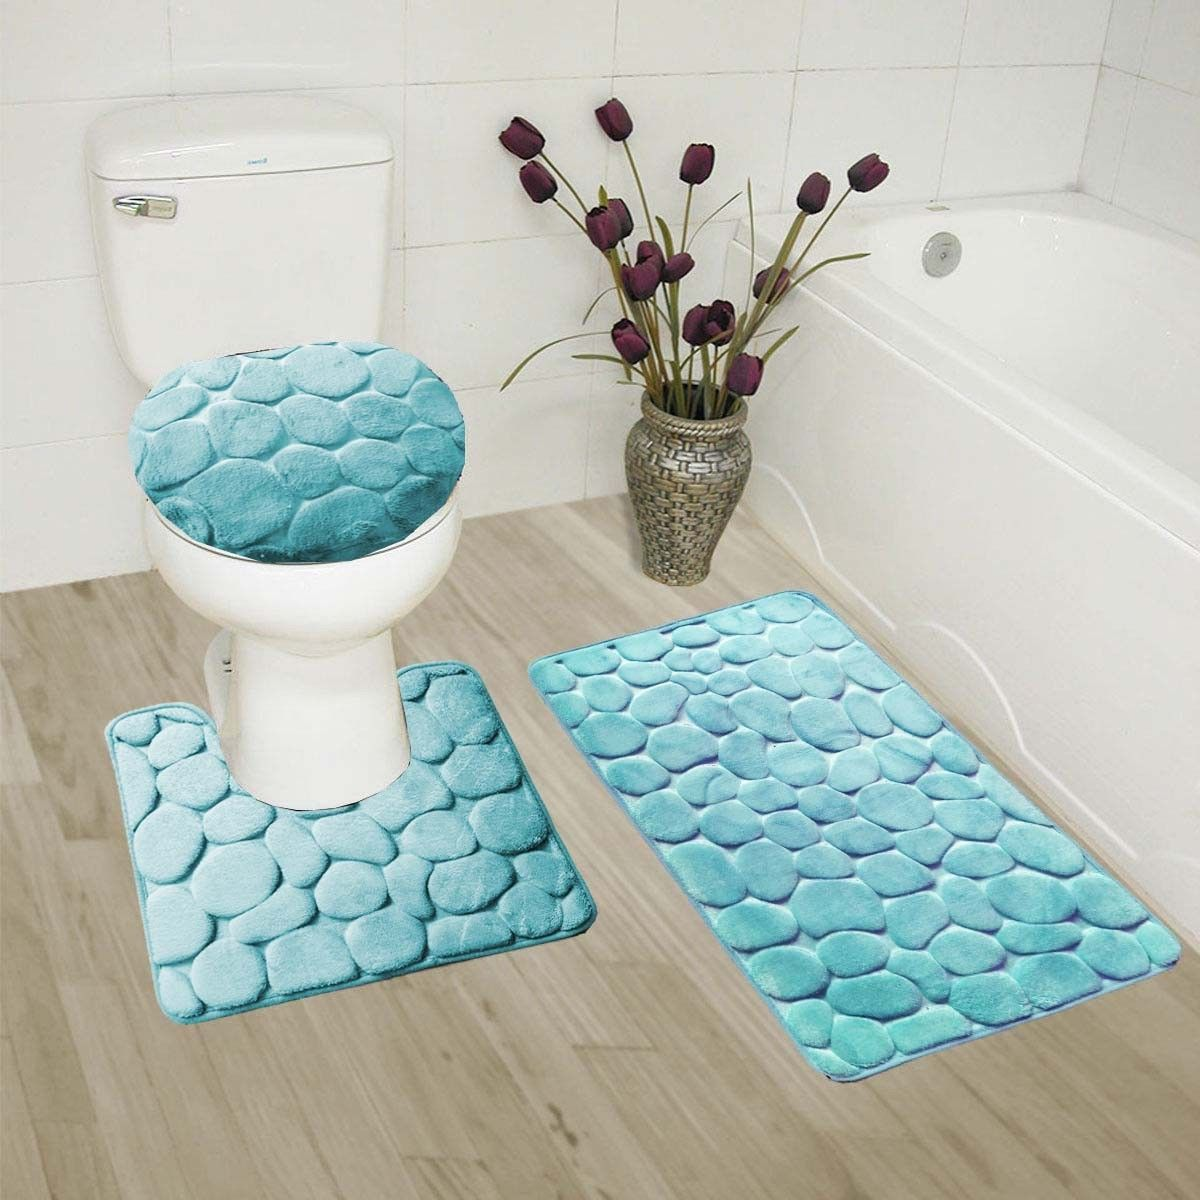 "AQUA 3-Piece Rock Memory Foam Bathroom Mat Set, Flannel Embossed Rug 19""x 30"", Contour Mat 19""x19"", and Toilet Lid Cover 19""x19"" with Non-Skid Rubber Back"